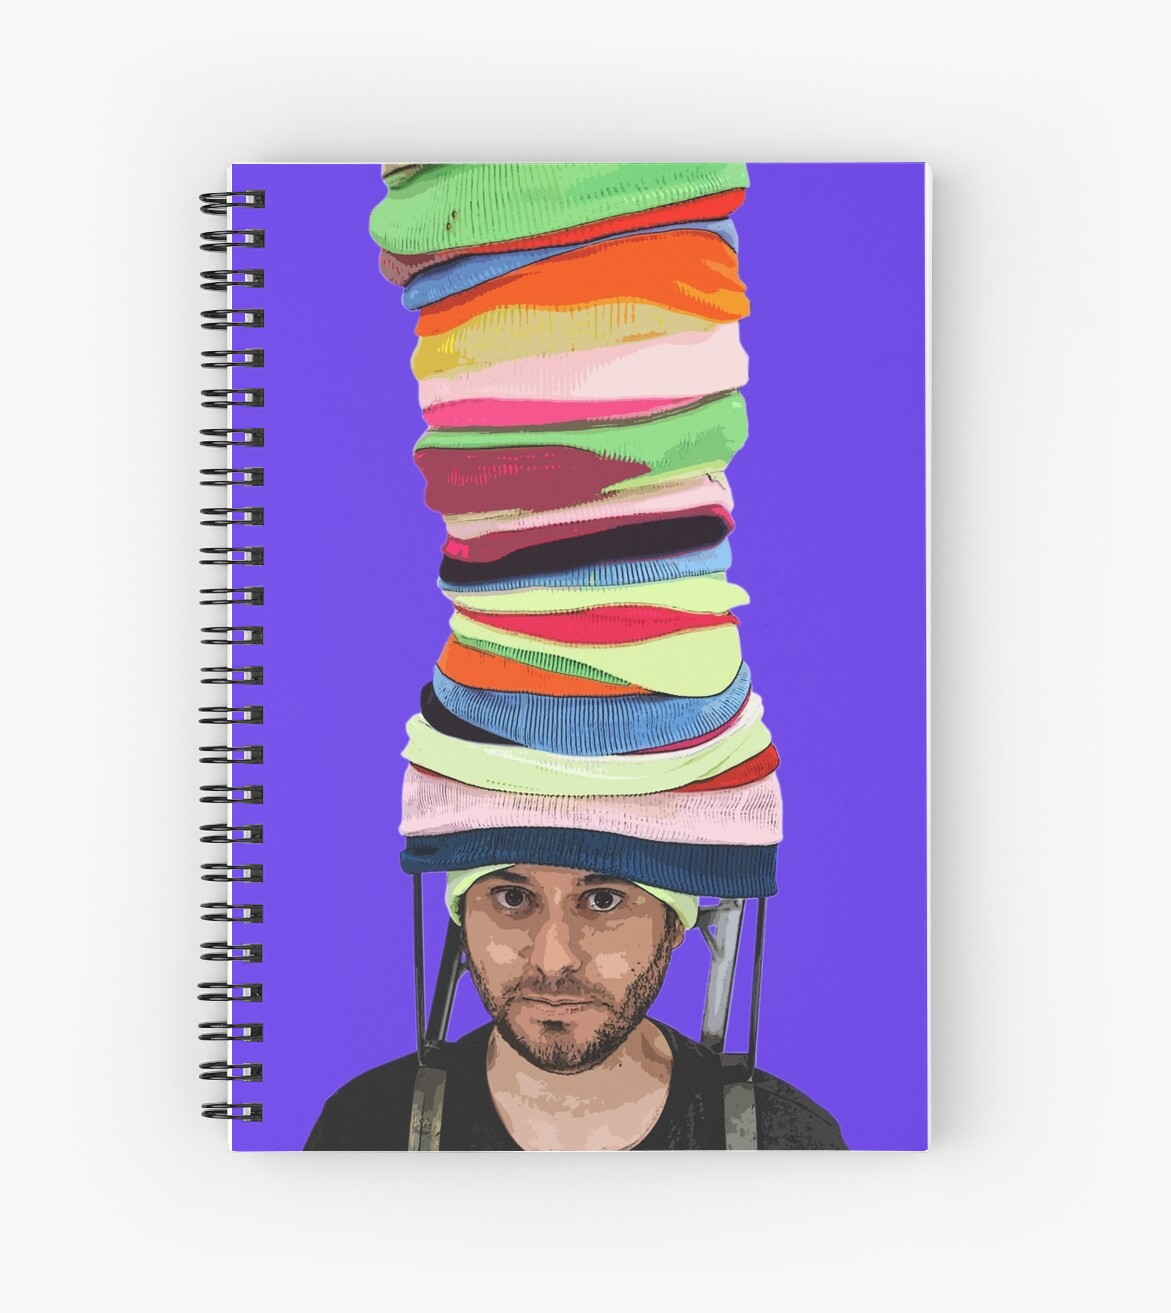 Notebook Klein Ethan Klein The Beanie King V2 Filtered H3h3 Spiral Notebook By Muwumbe